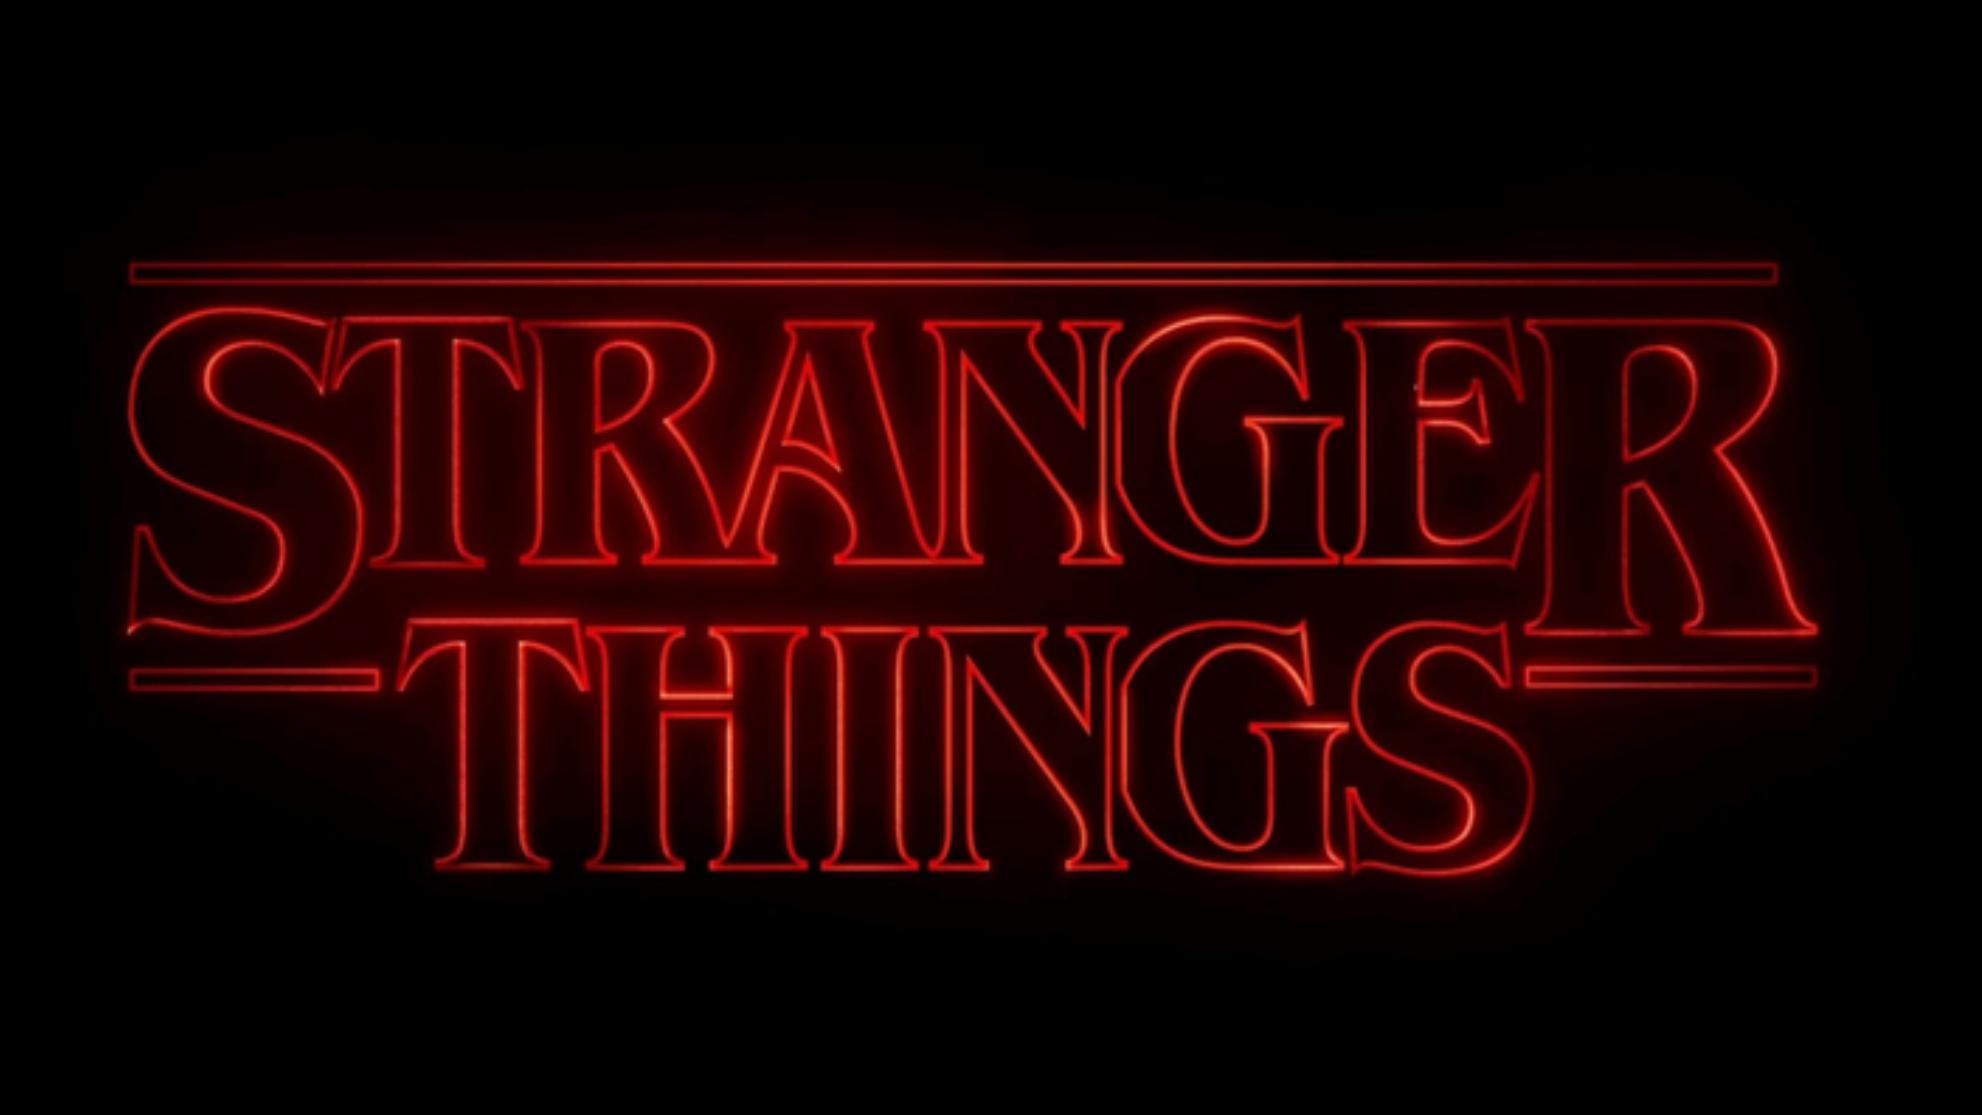 Which Stranger Things character are you? (1)